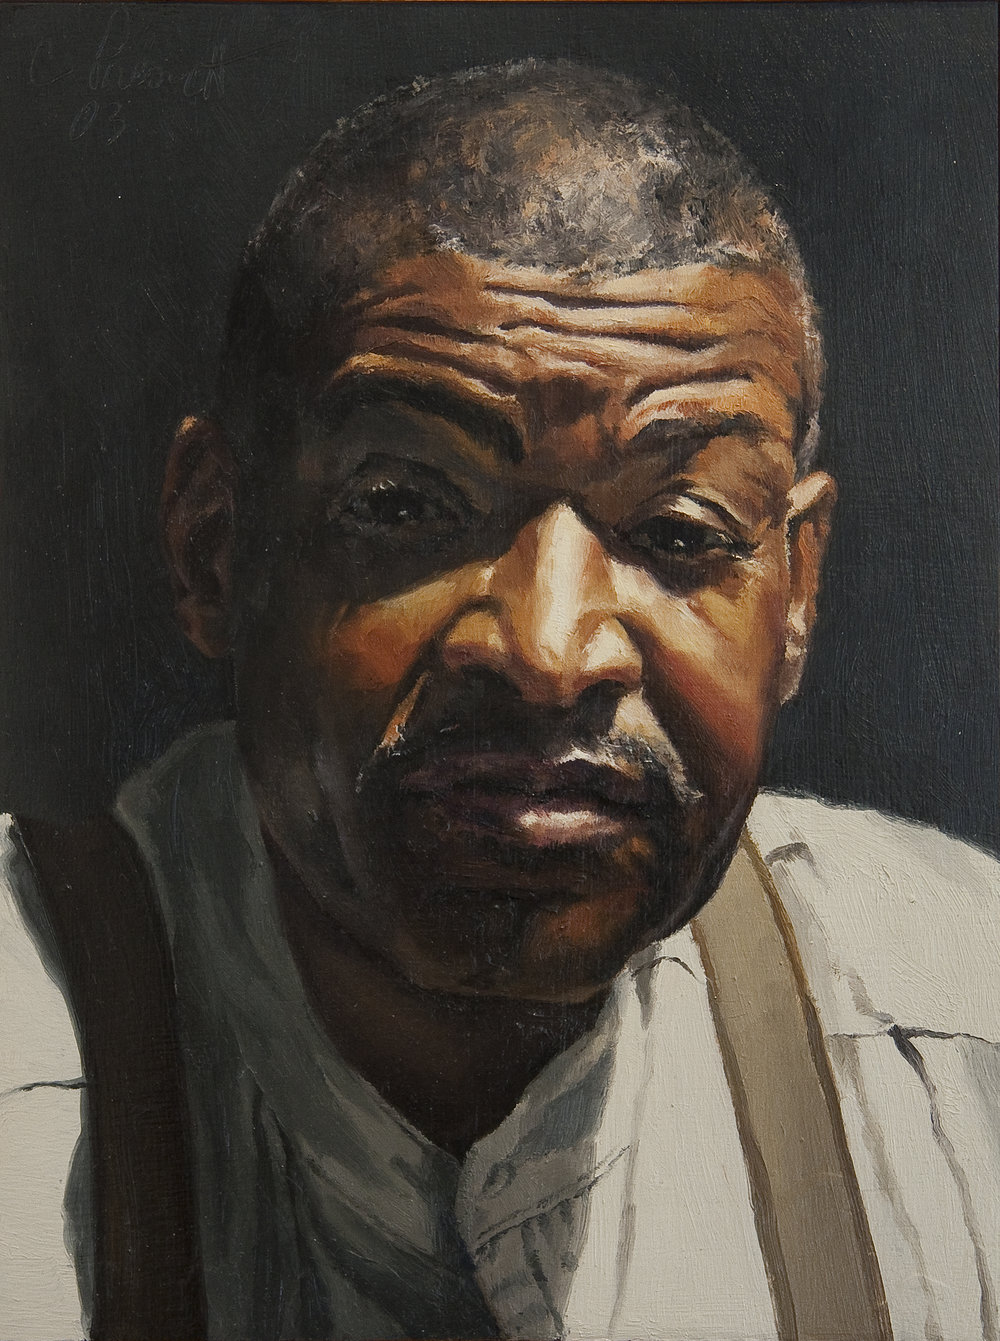 "Under the Scrutiny of Barry Davis , Oil on Wood Panel, 2003, 12"" x 9"", Private Collection"